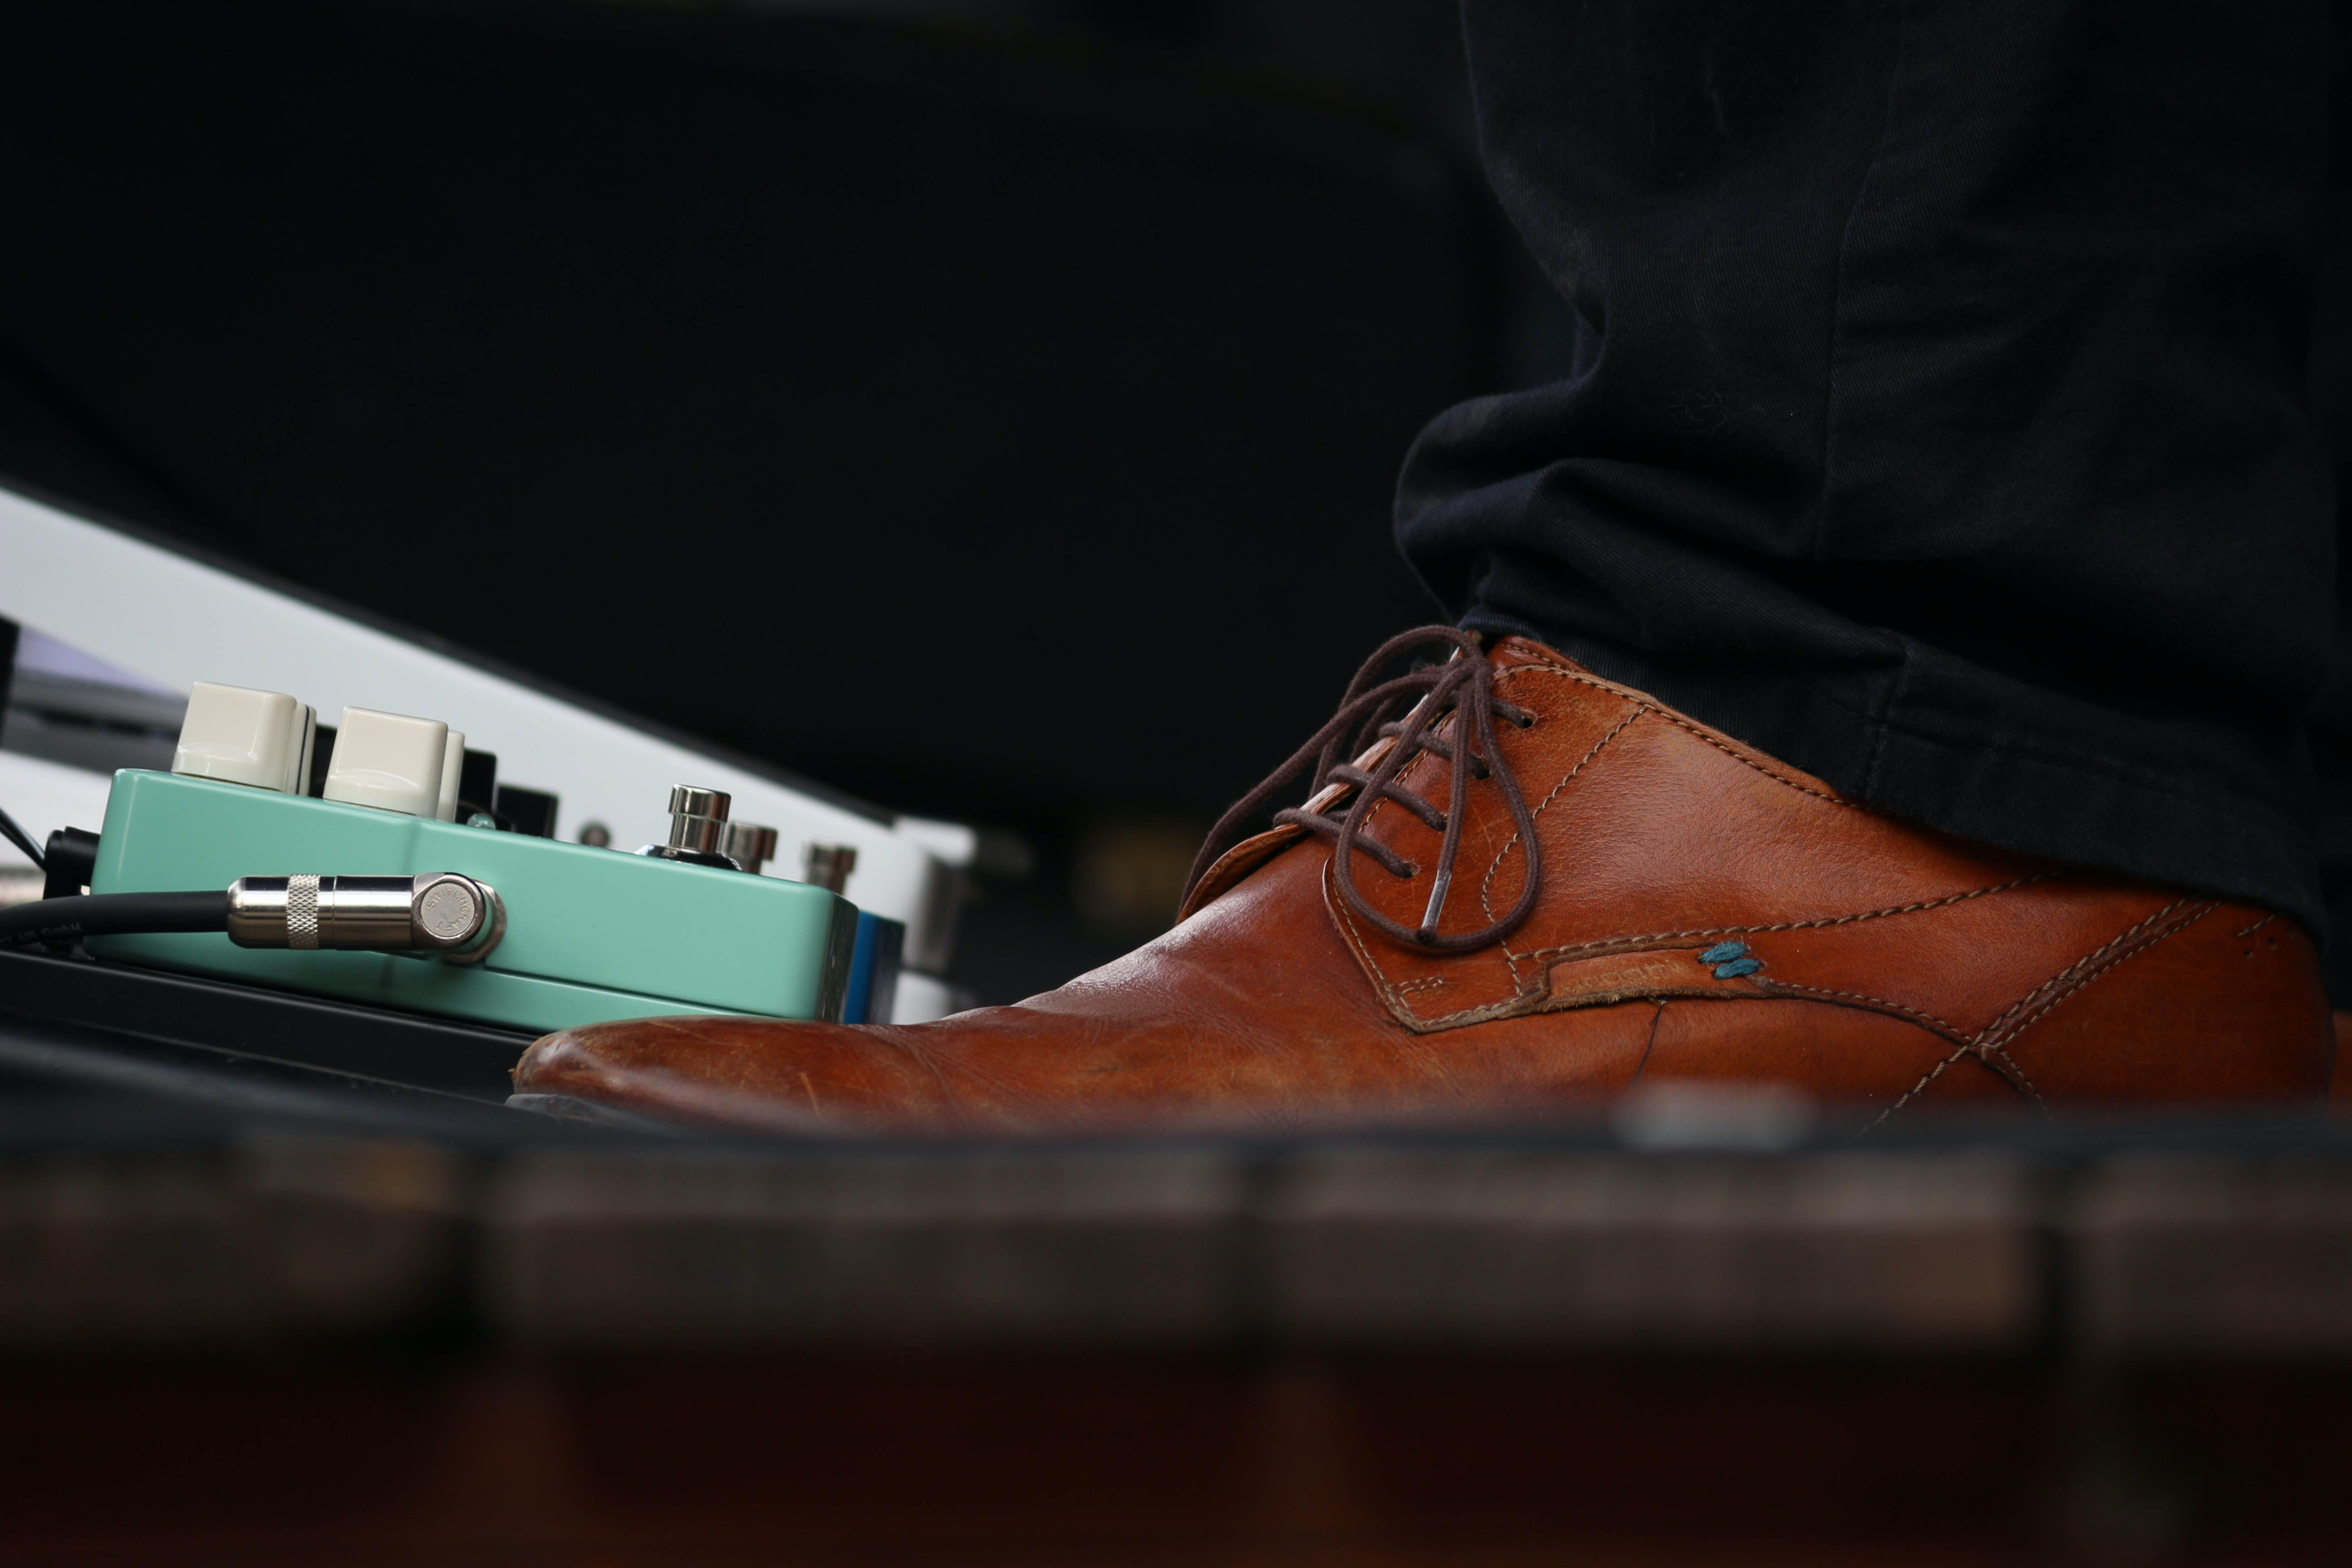 person wearing brown leather lace-up dress shoe